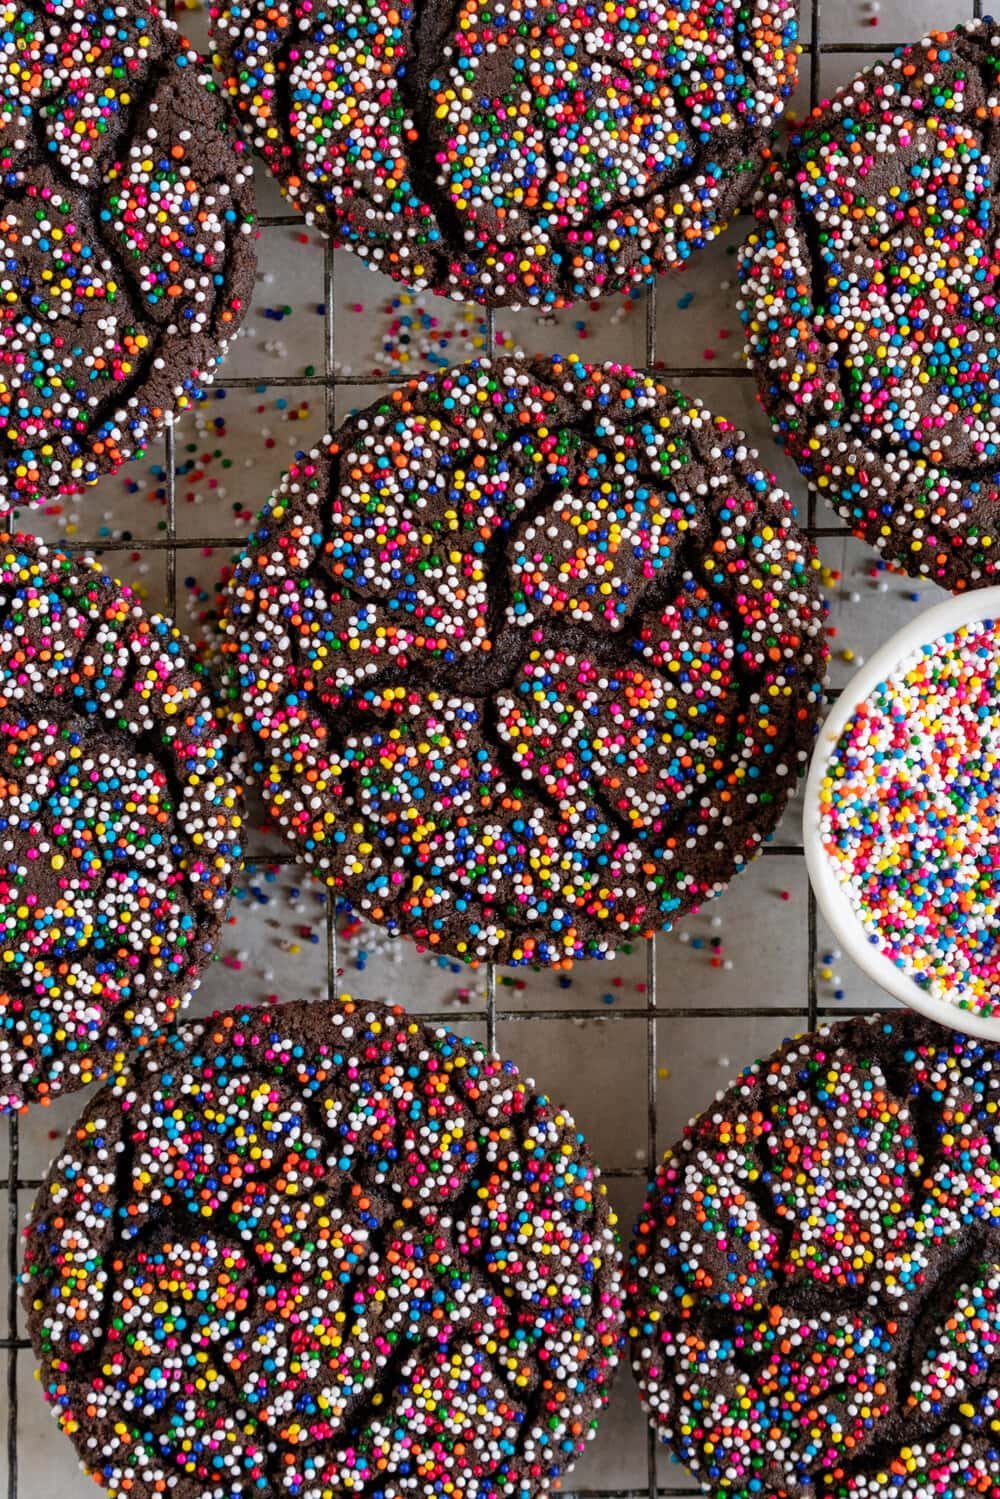 Chocolate Sprinkle Sugar Cookies. These chocolate sugar cookies are thin and chewy, and rolled in sprinkles instead of the traditional sugar, which gives them a perfect crunch and super cute rainbow sprinkle finish. These are similar to crinkle cookies, but the sprinkle coating makes them extra cute, and they are so easy to make!